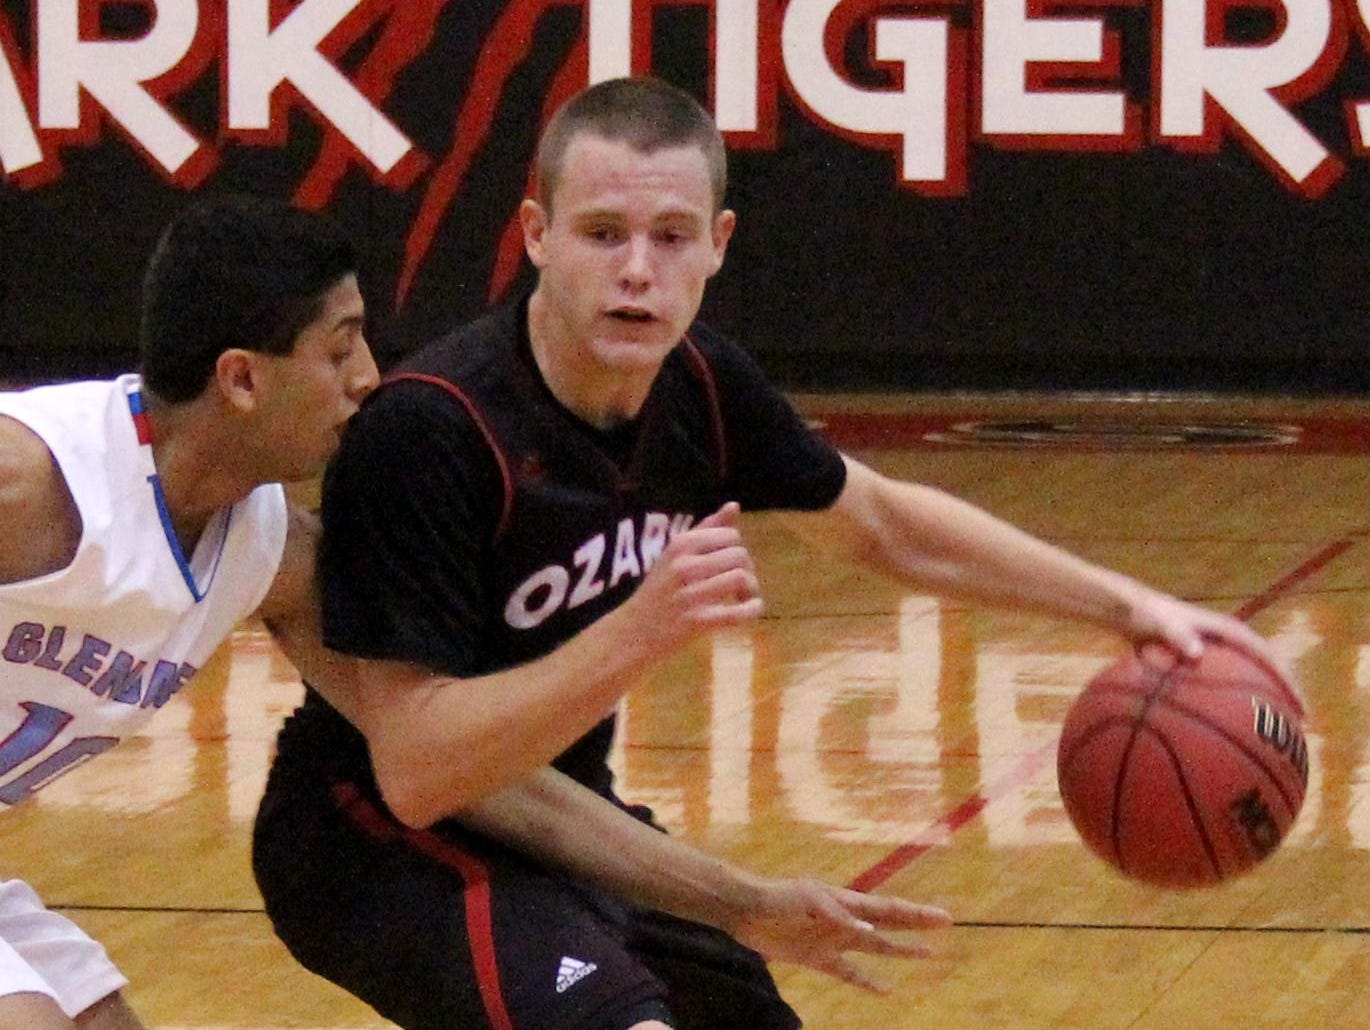 College of the Ozarks signee Heath Carmichael of Ozark will take part in the Gerald A. Pilz and Friends All-Star Games on Saturday in Point Lookout.